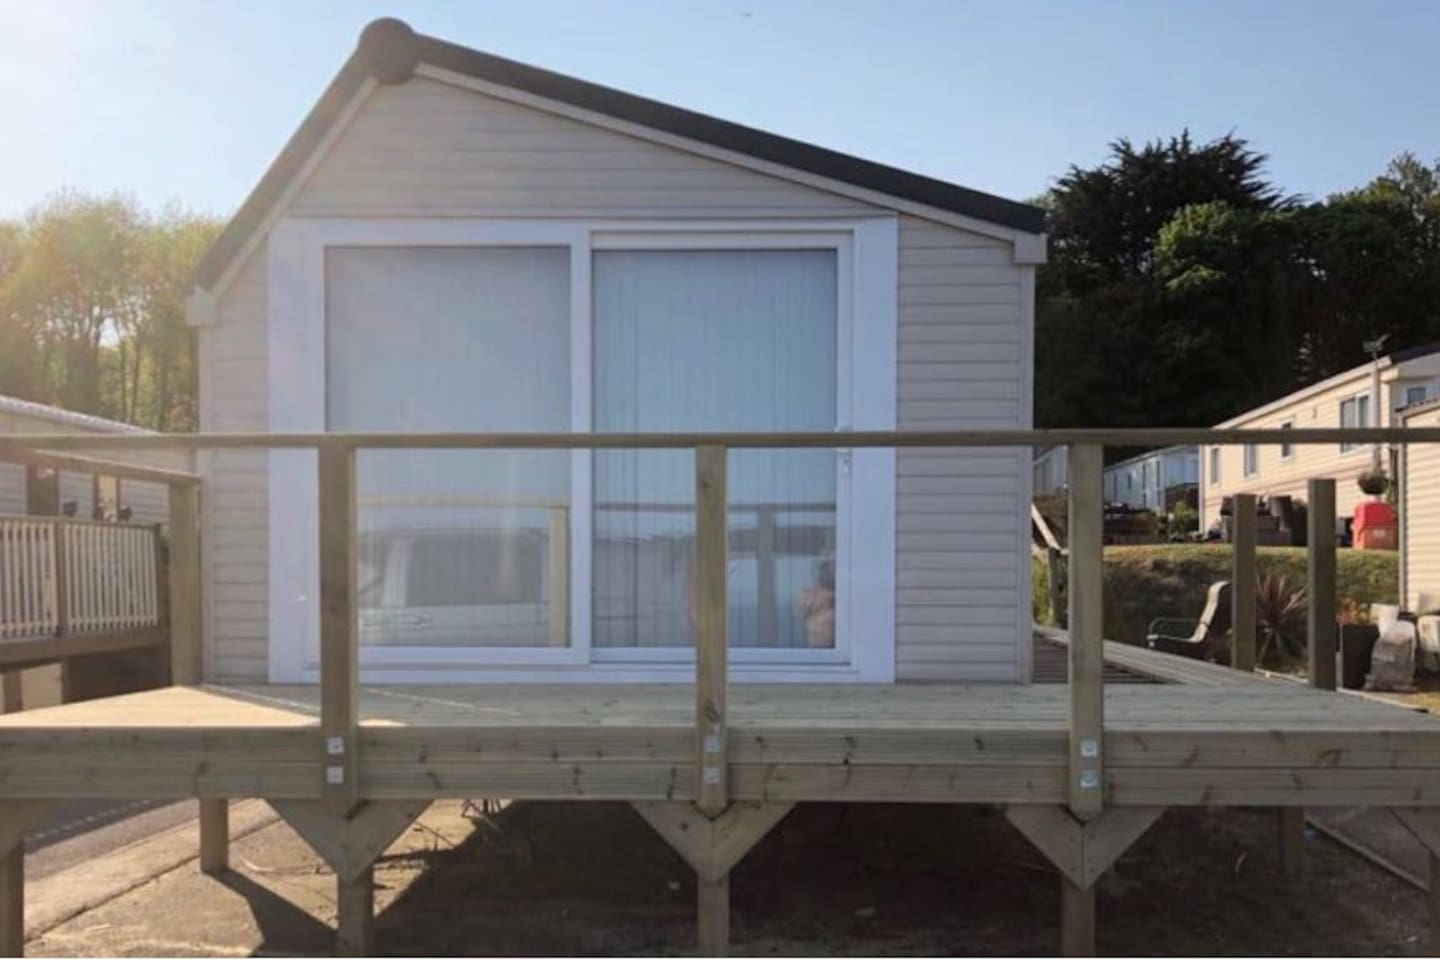 Front of caravan and decking area